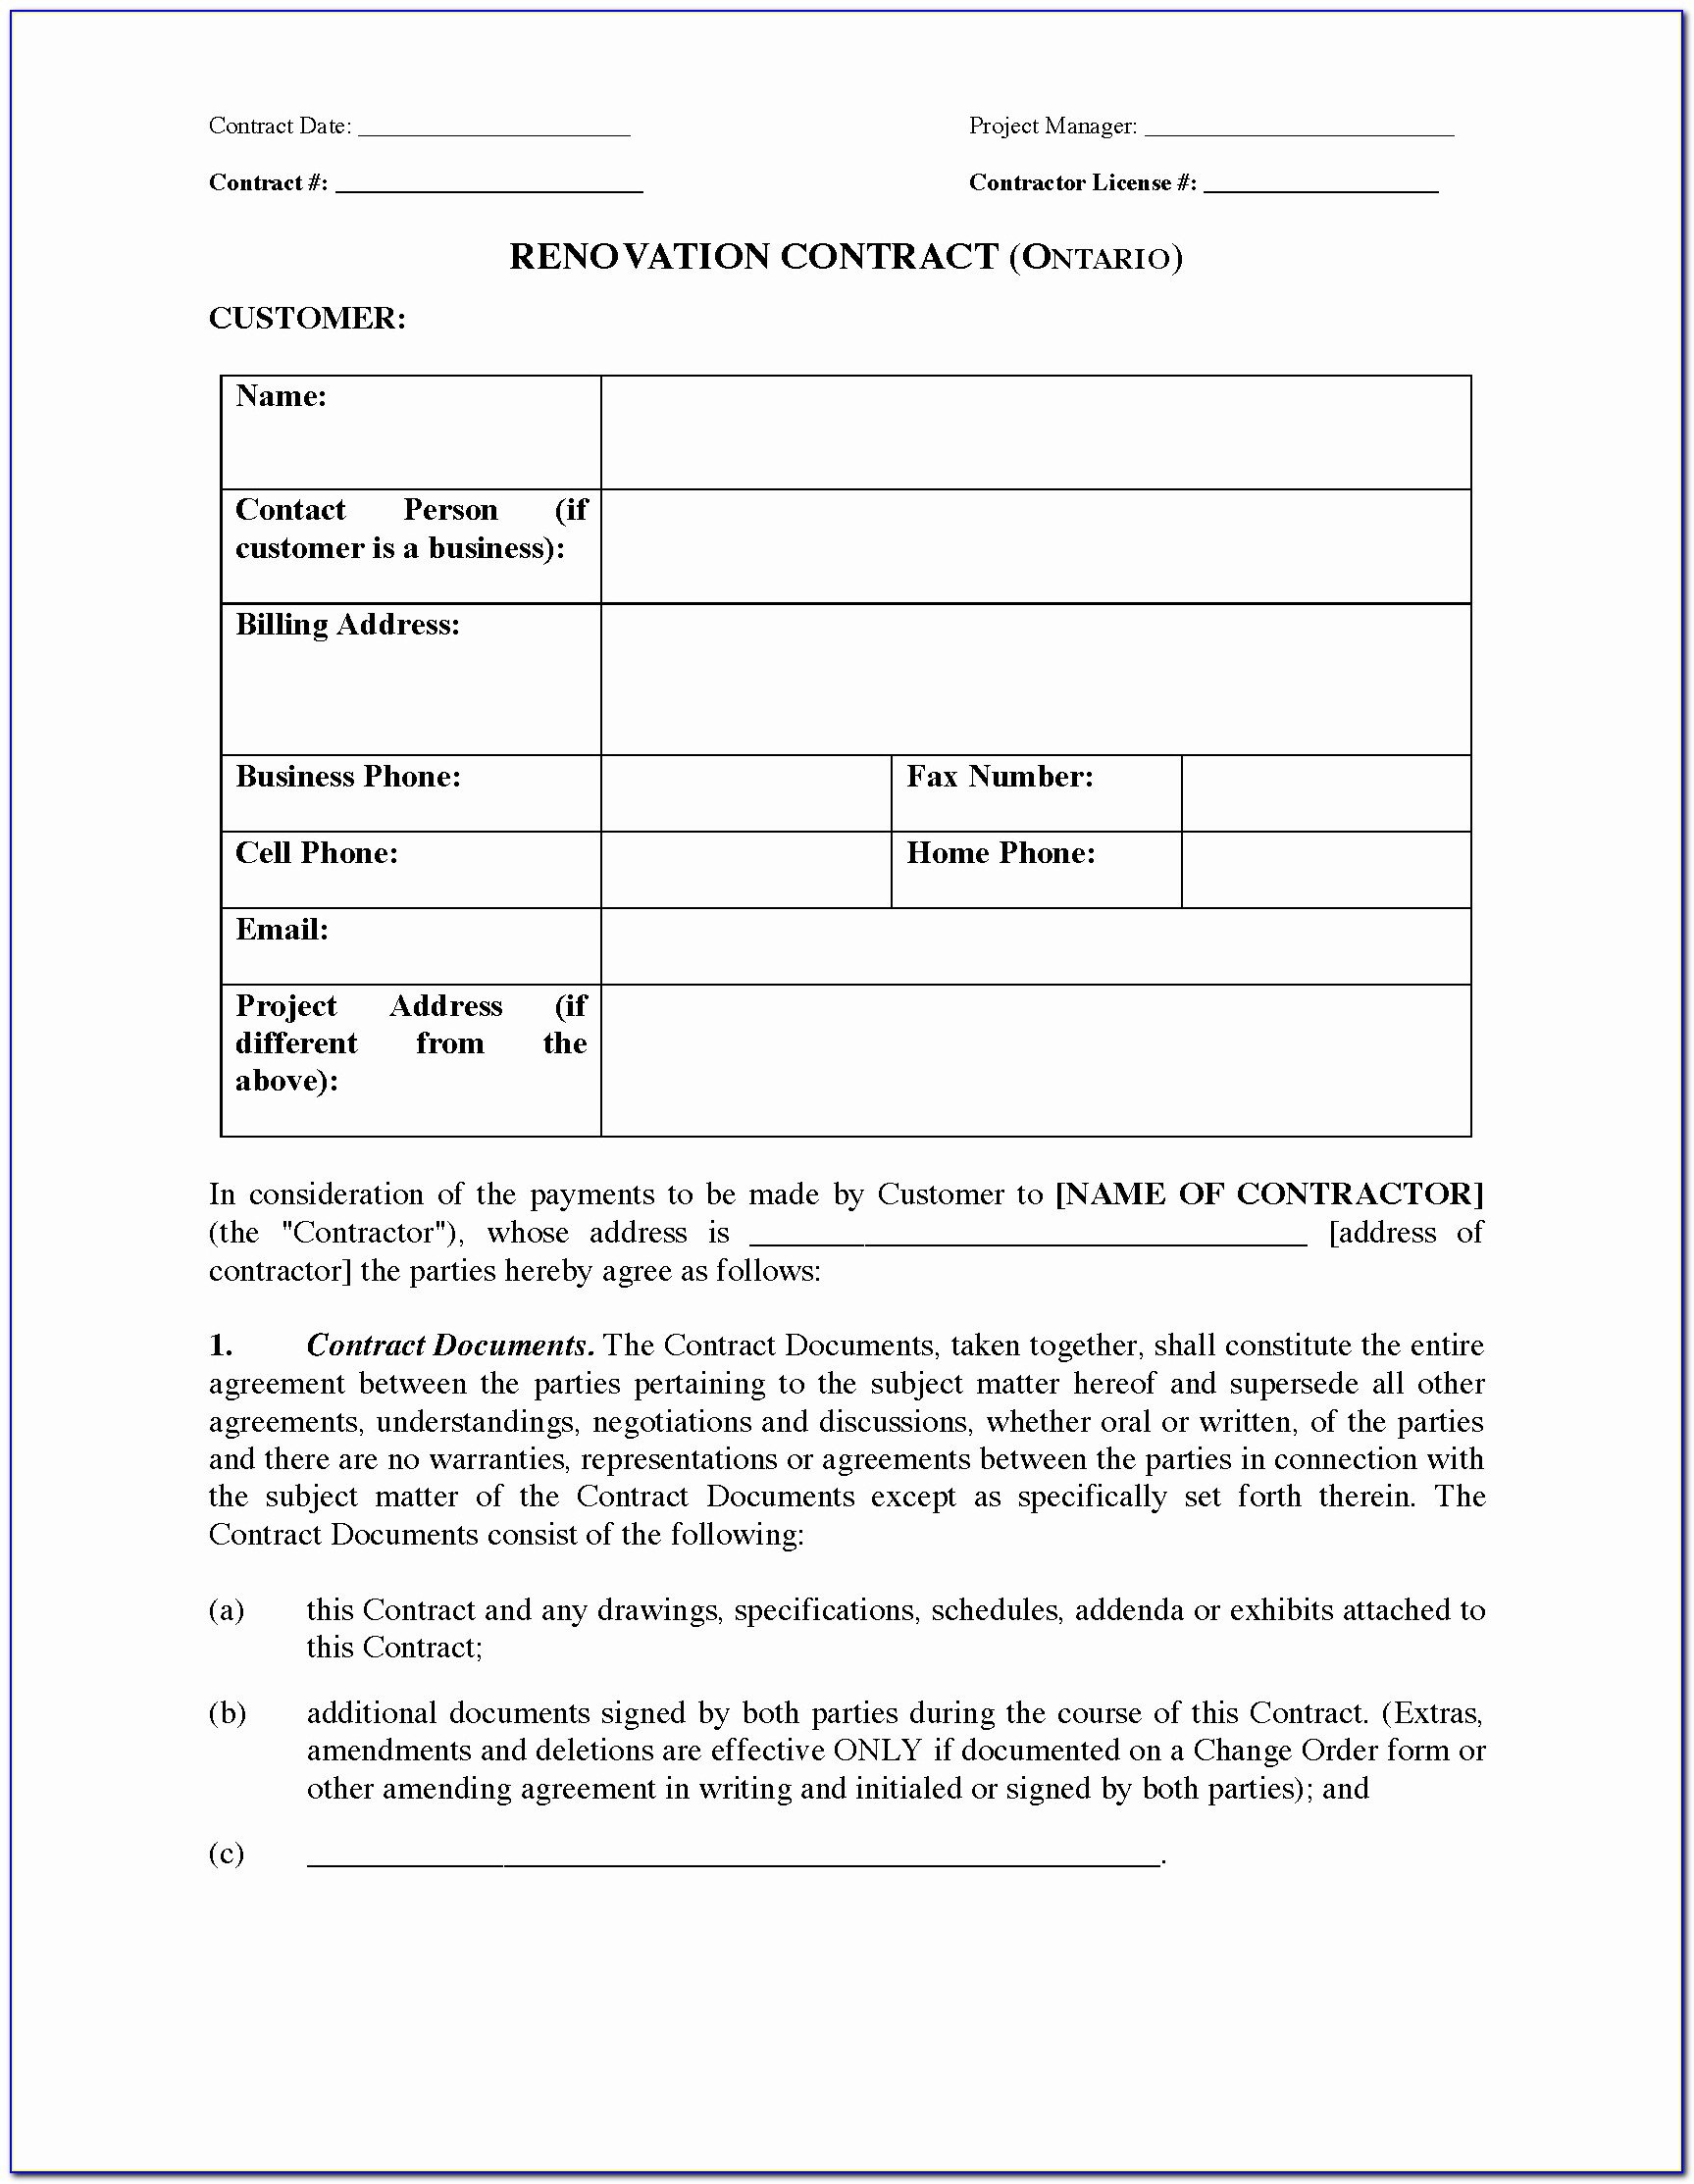 Drywall Contract Template Unique Contract Remodeling Contract Form Forms Renovation Template Free